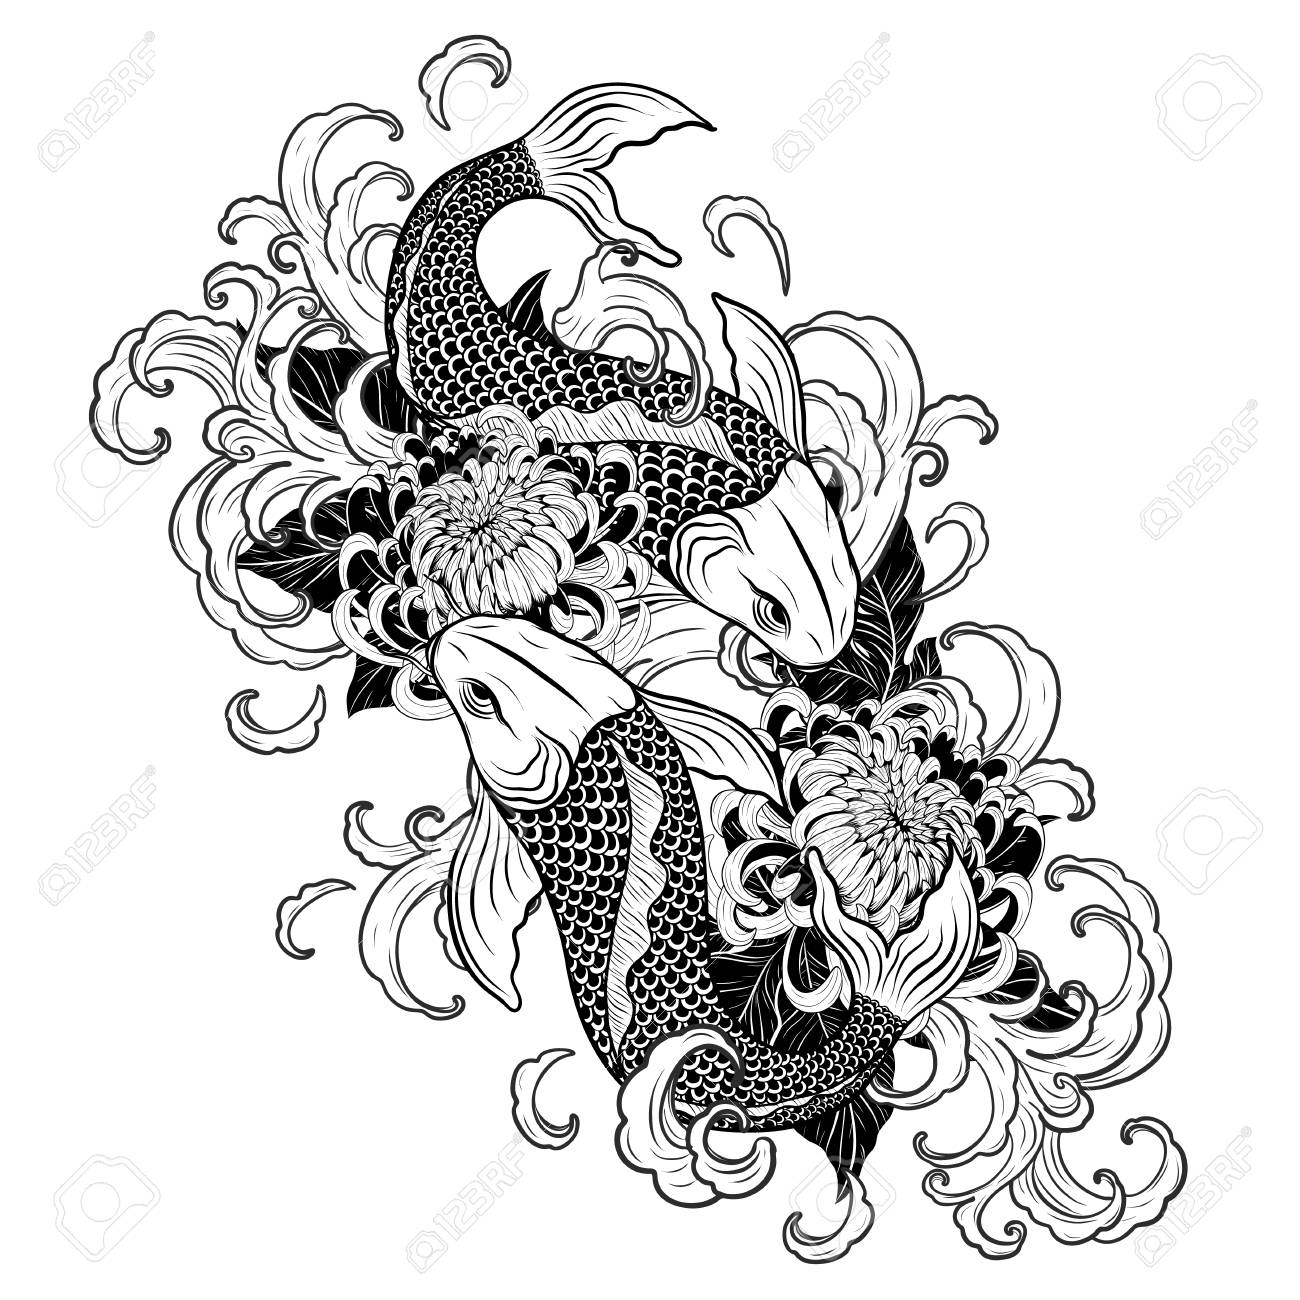 Koi fish and chrysanthemum tattoo by hand drawing tattoo art highly detailed in line art